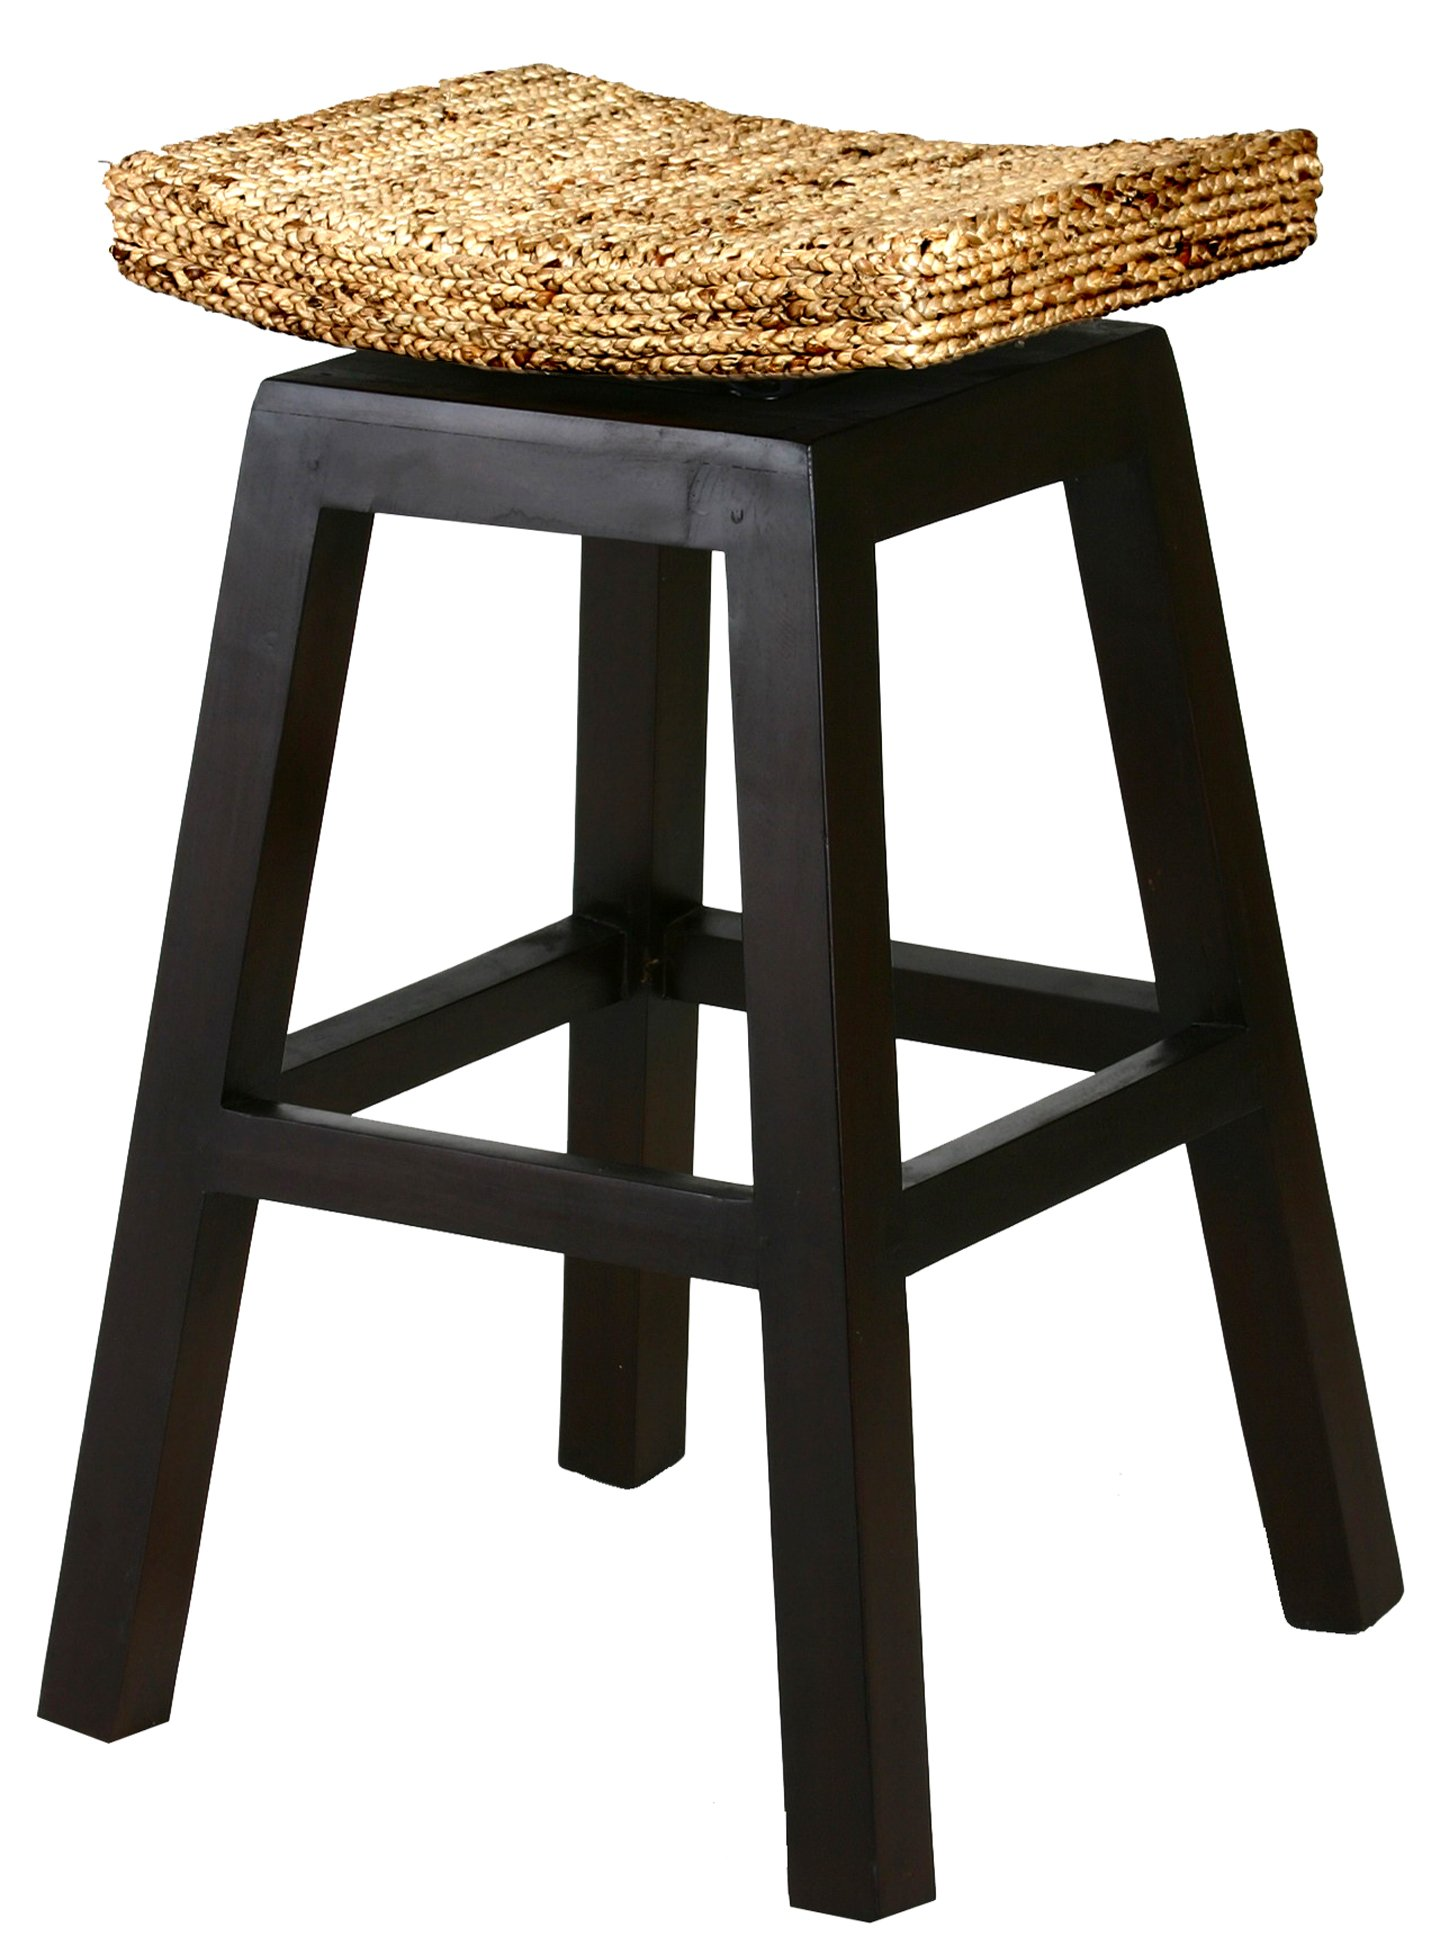 CHIC TEAK Water Hyacinth Vessel Counter Stool by CHIC TEAK